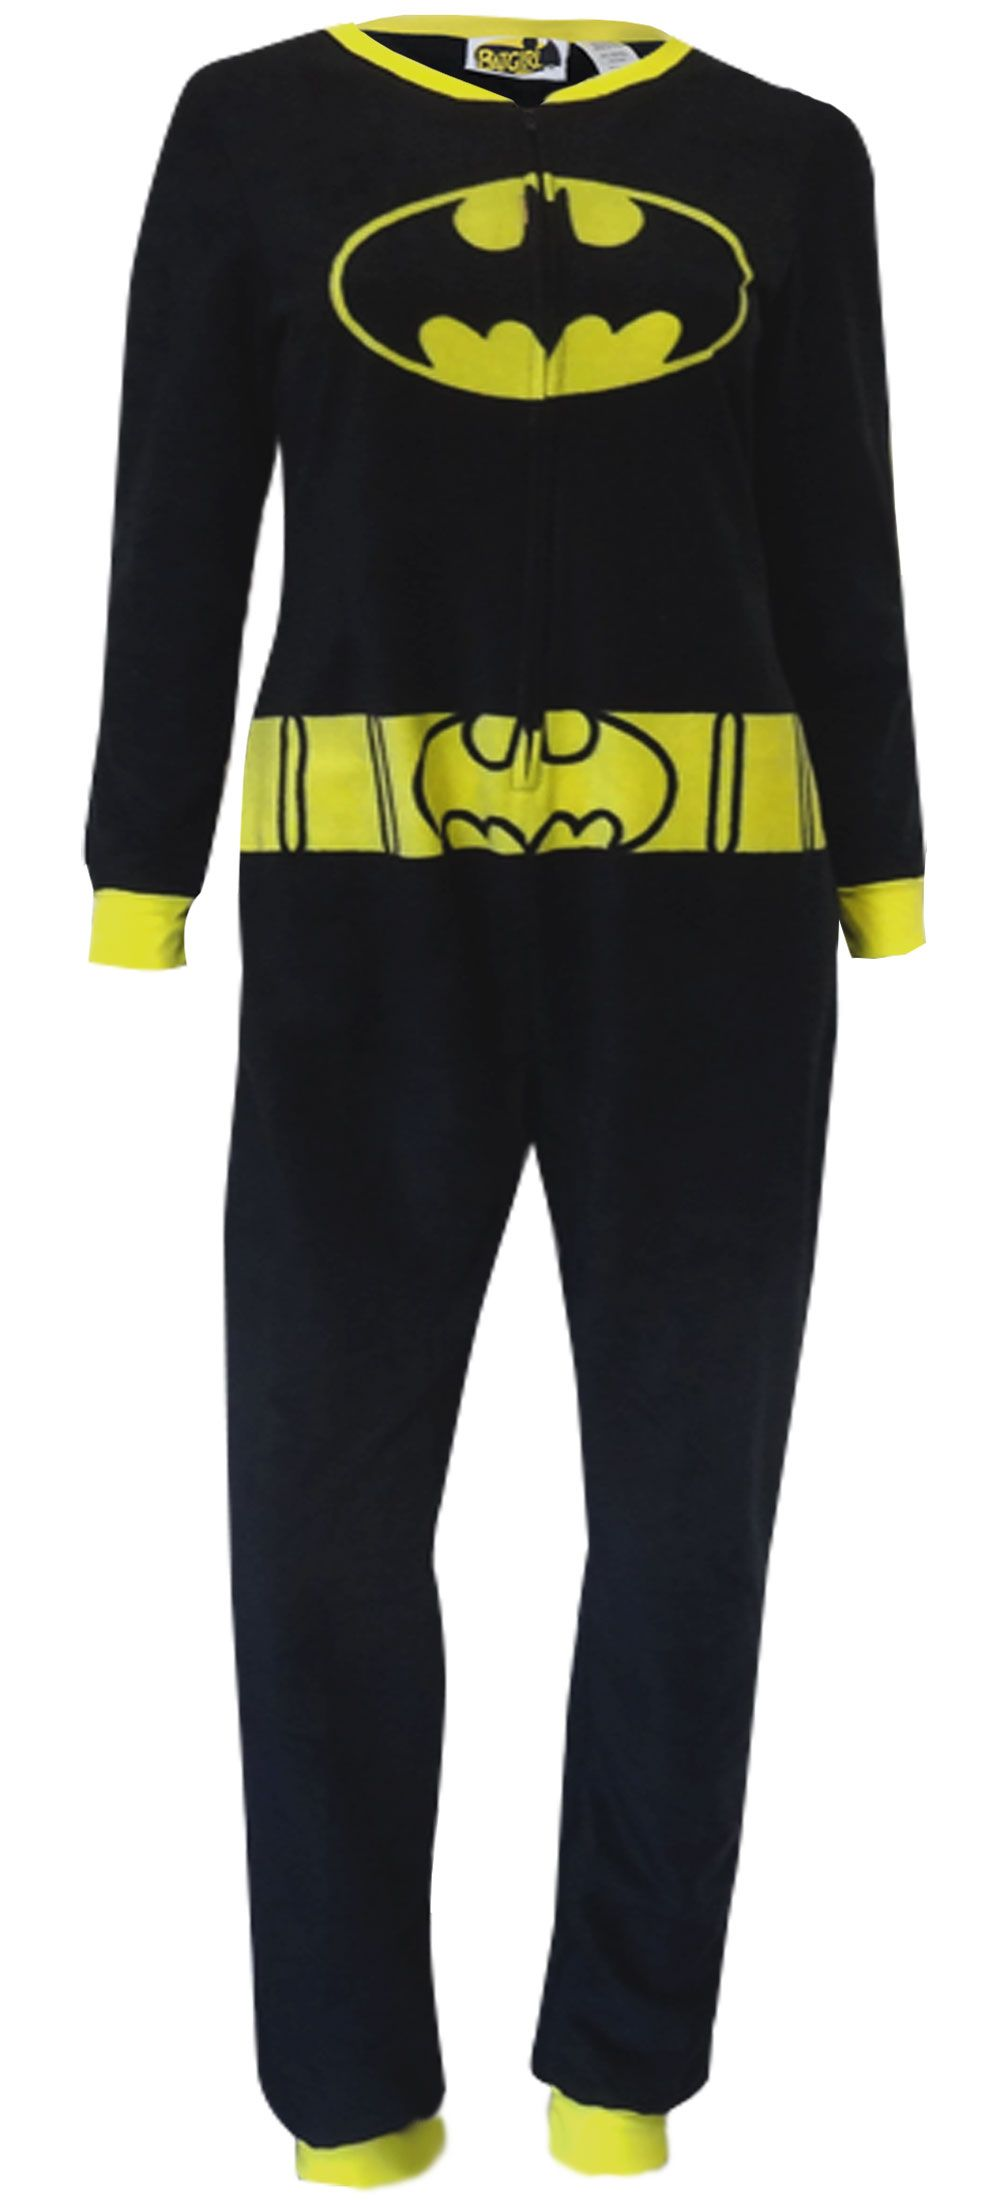 DC Comics Batgirl Fleece One Piece Pajama | Dc comics ...